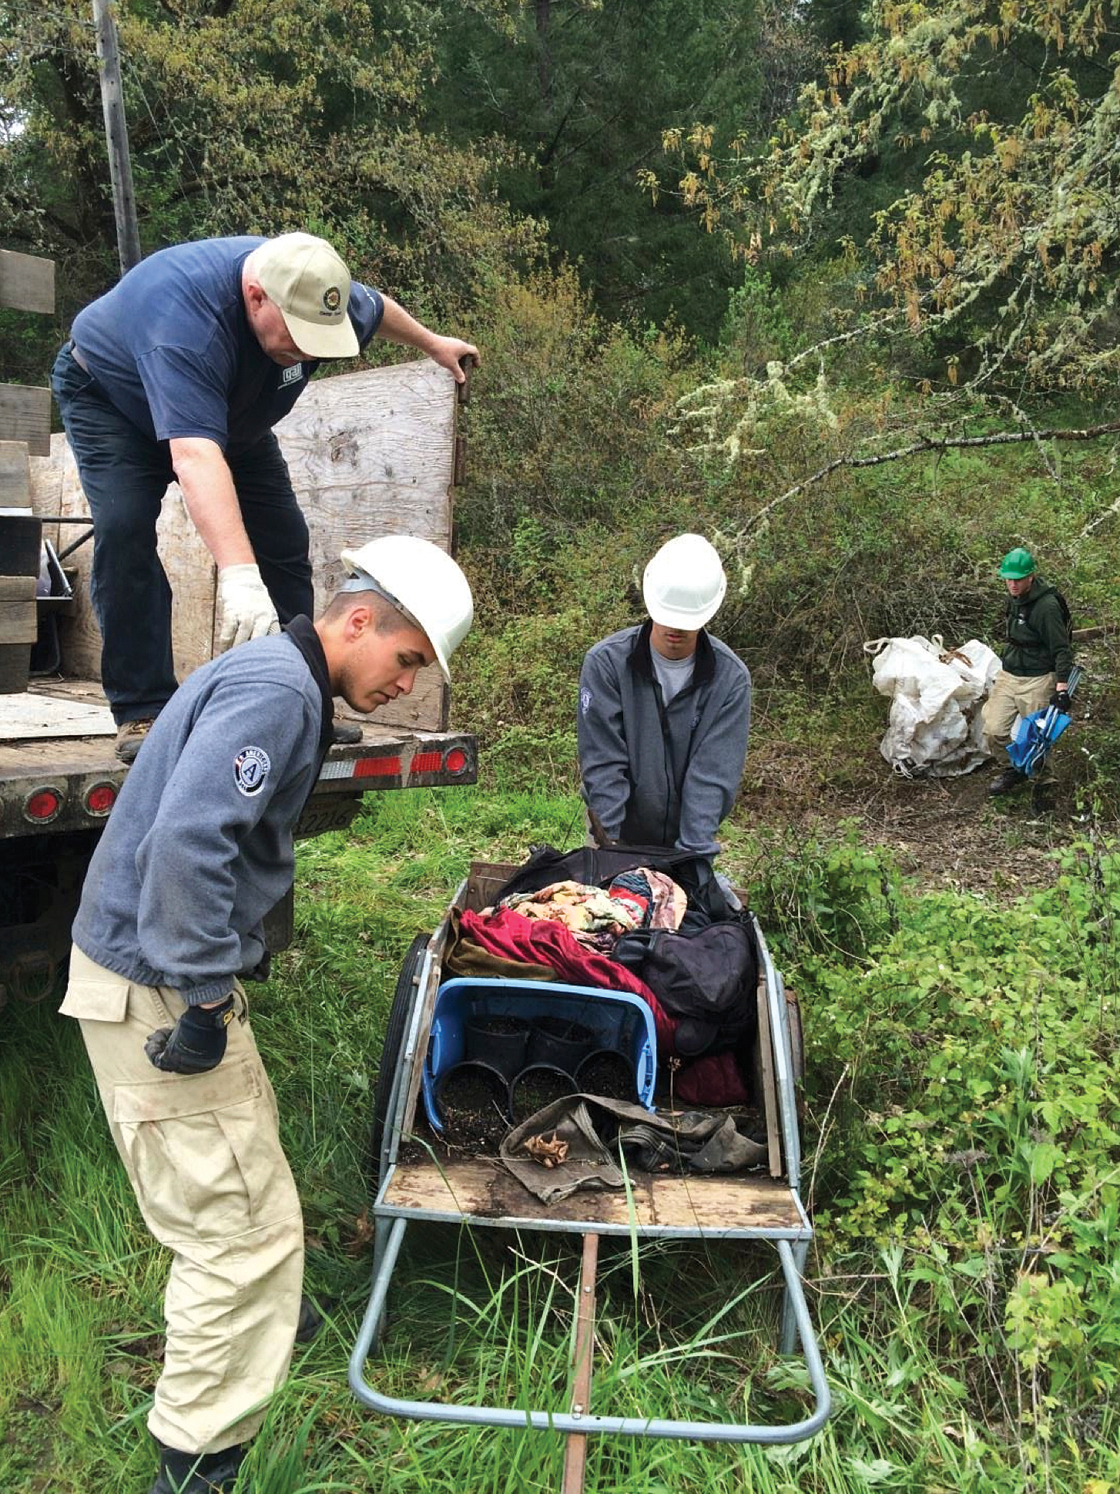 Workers hauled out more than 14,000 pounds of trash from illegal camps in the northern area of John B. Dewitt Redwoods State Natural Reserve near Redway in late March. (Courtesy of Christopher Glenn)